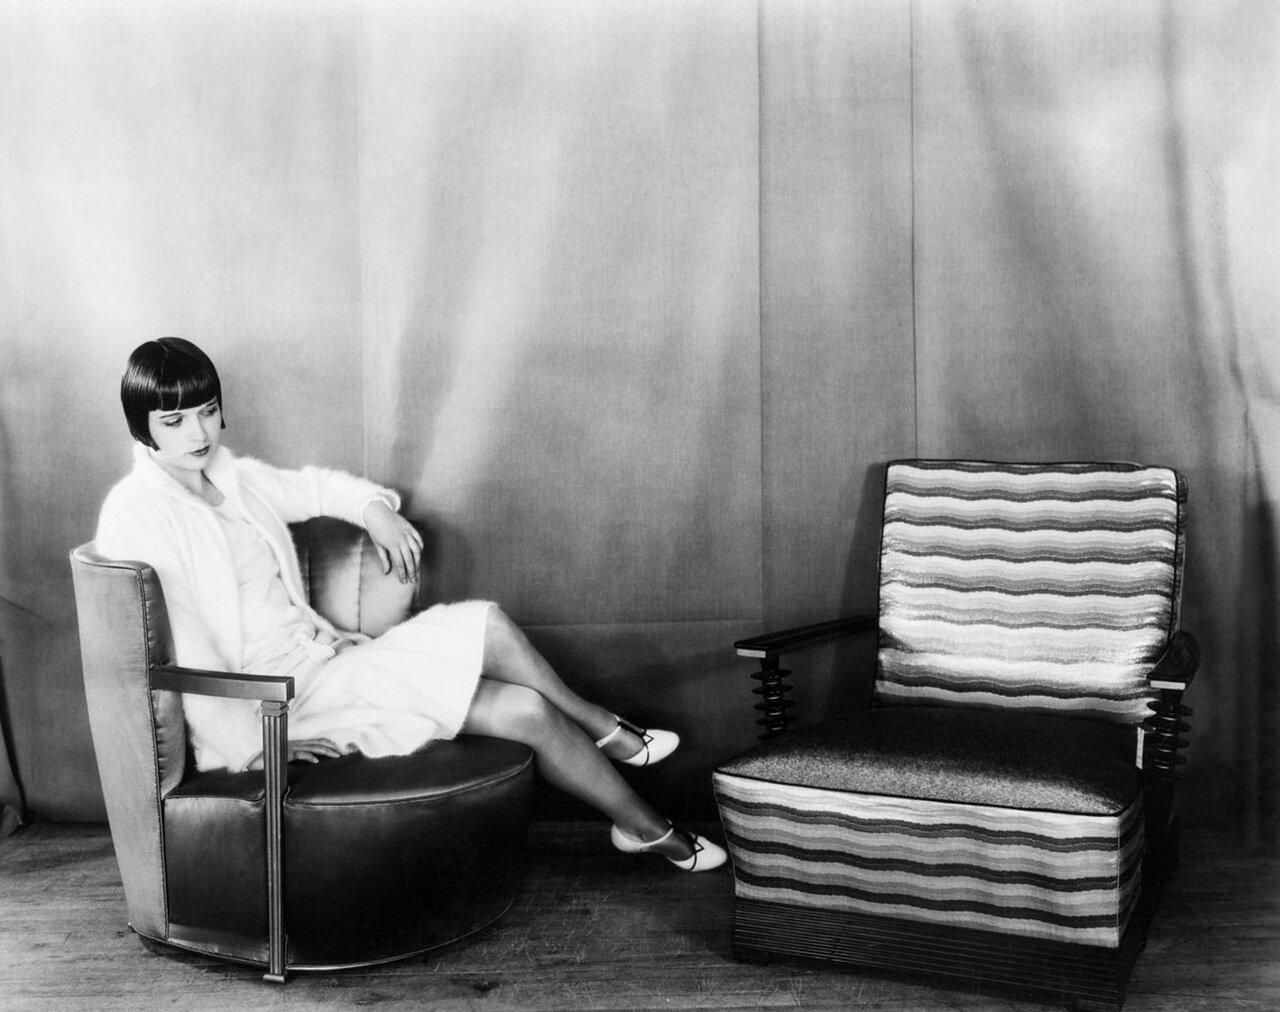 5/25/28: Miss Louise Brooks, movie star, is shown studying the fascinating lines of the modern chair.